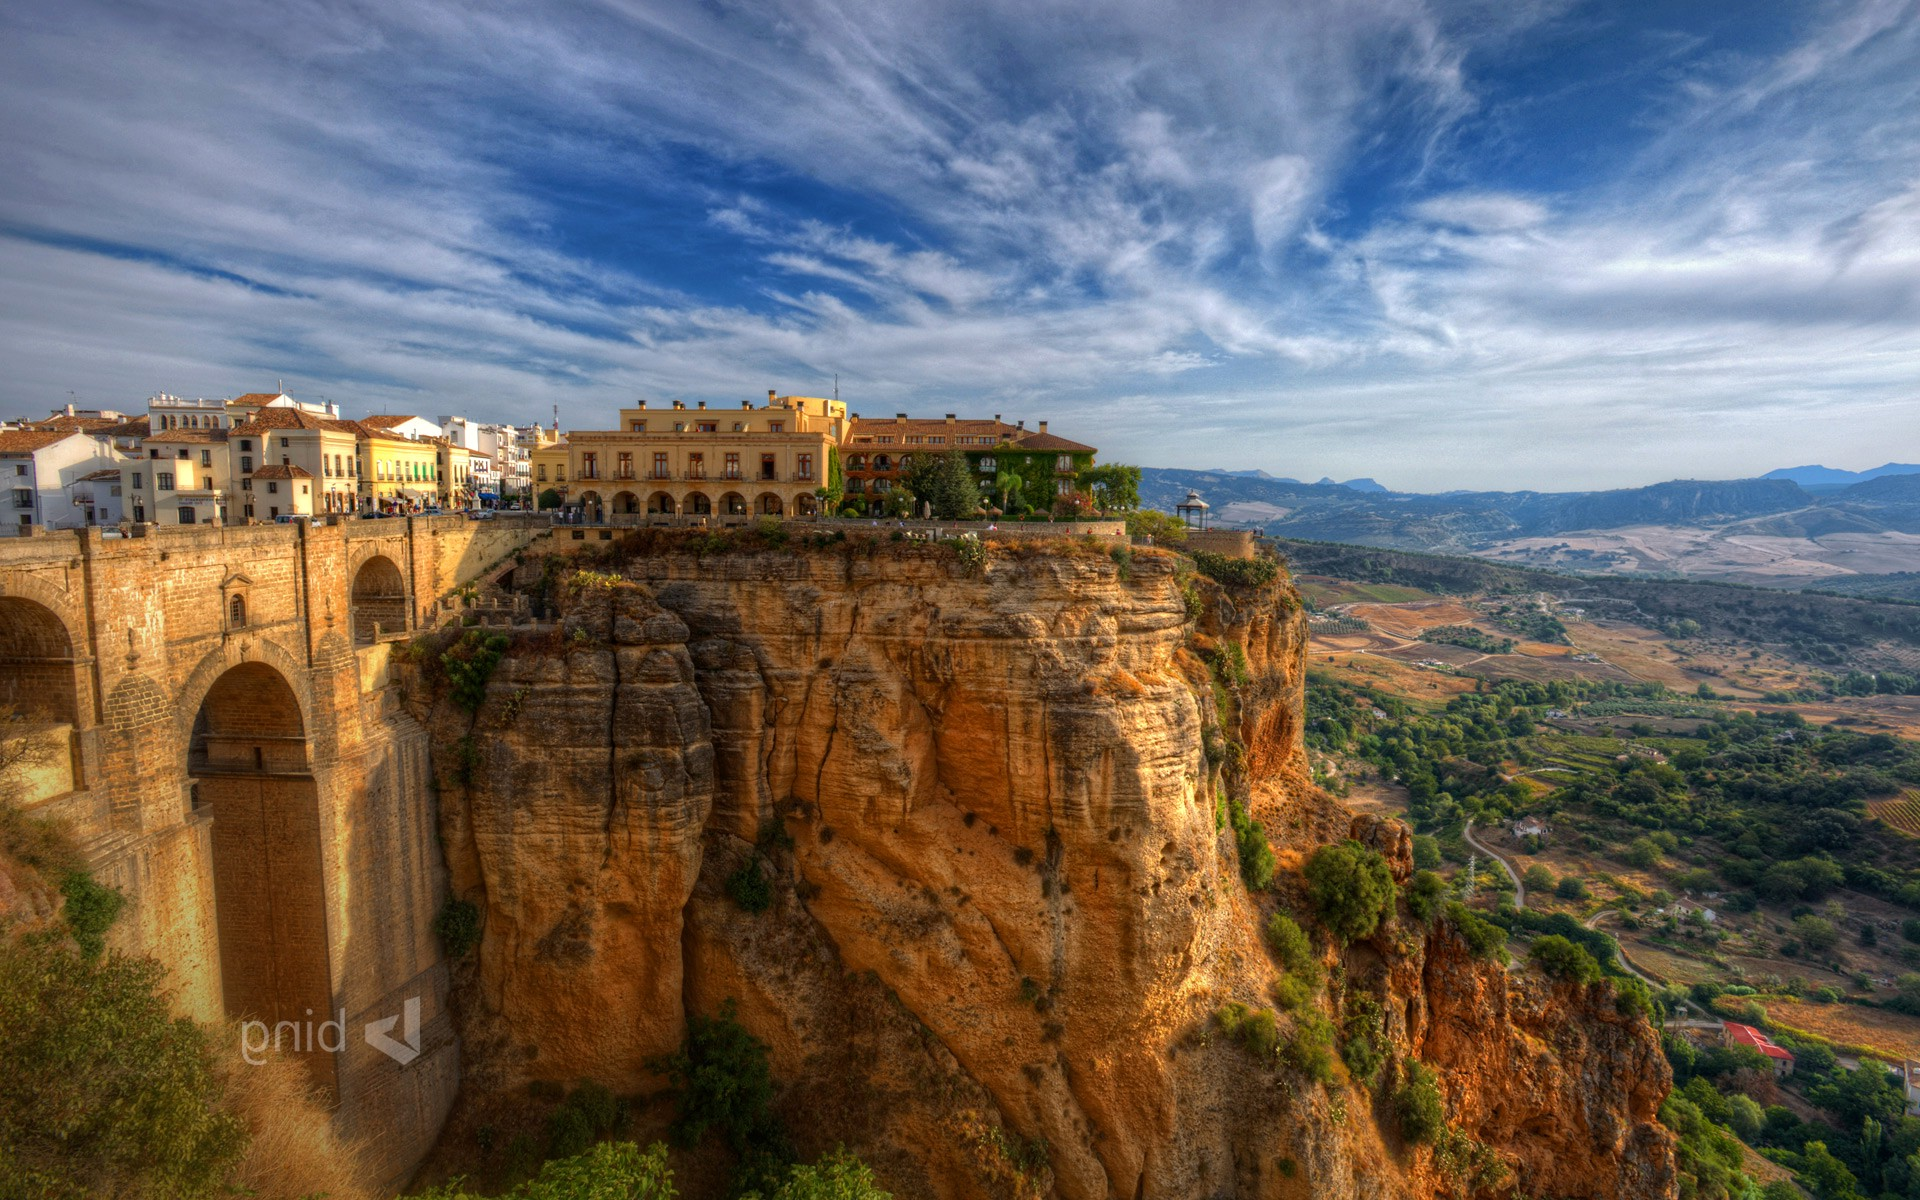 Anime Lock Screen Wallpaper City Old Building Spain Cliff Landscape Wallpapers Hd